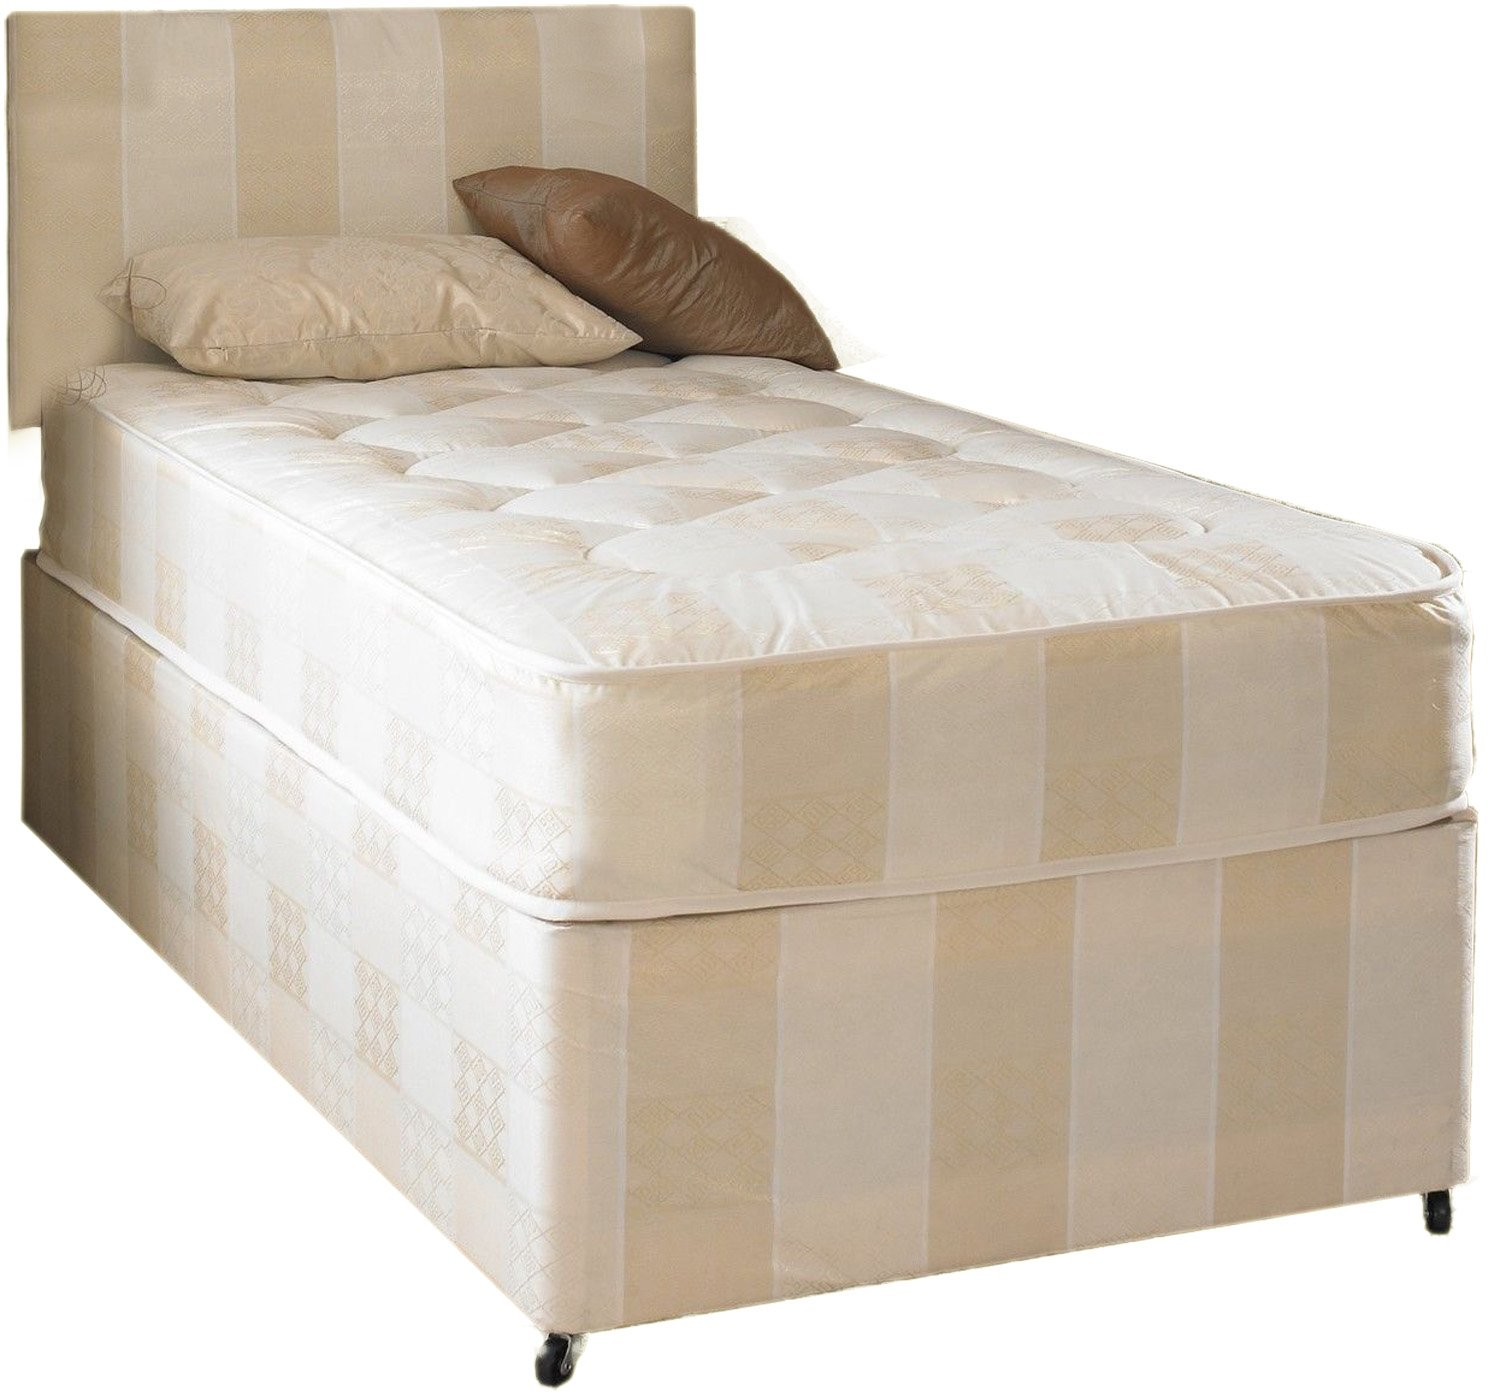 Deep Quilt Divan Bed With Slider Storage Including Deep Quilt Mattress And Headboard (Available in 2'6 Small Single - 3'0 Single) (3x6'3 Single) In2Bed LTD